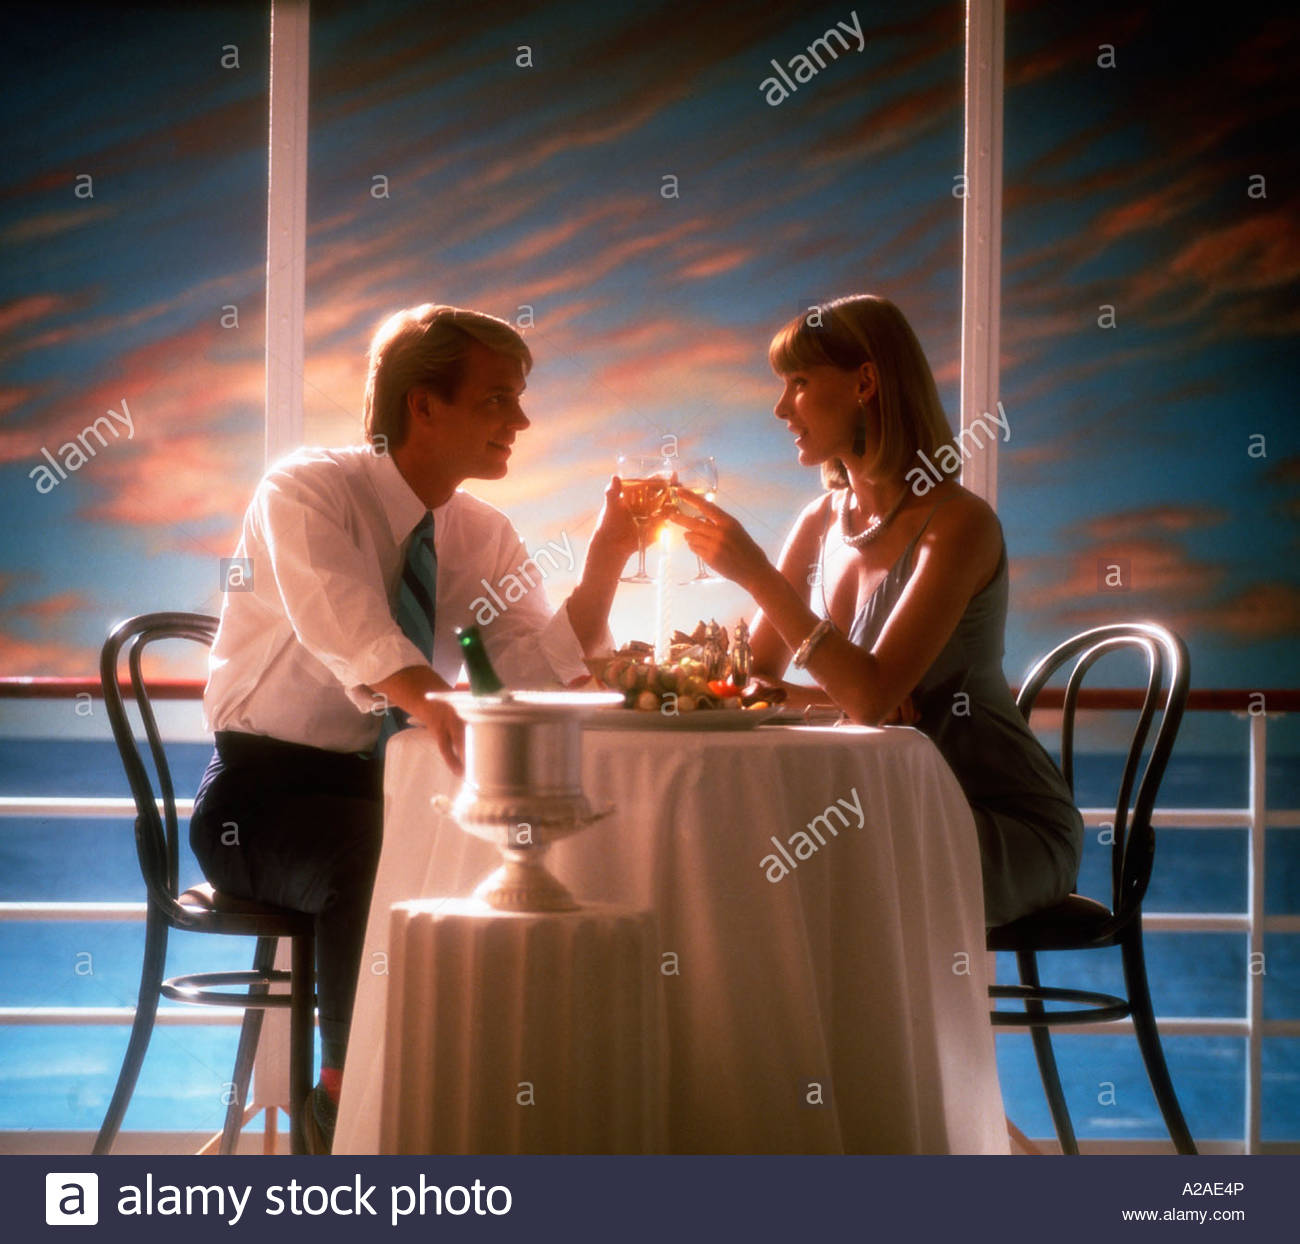 Romantic dinner for two on board a cruise ship, sun setting in the ...